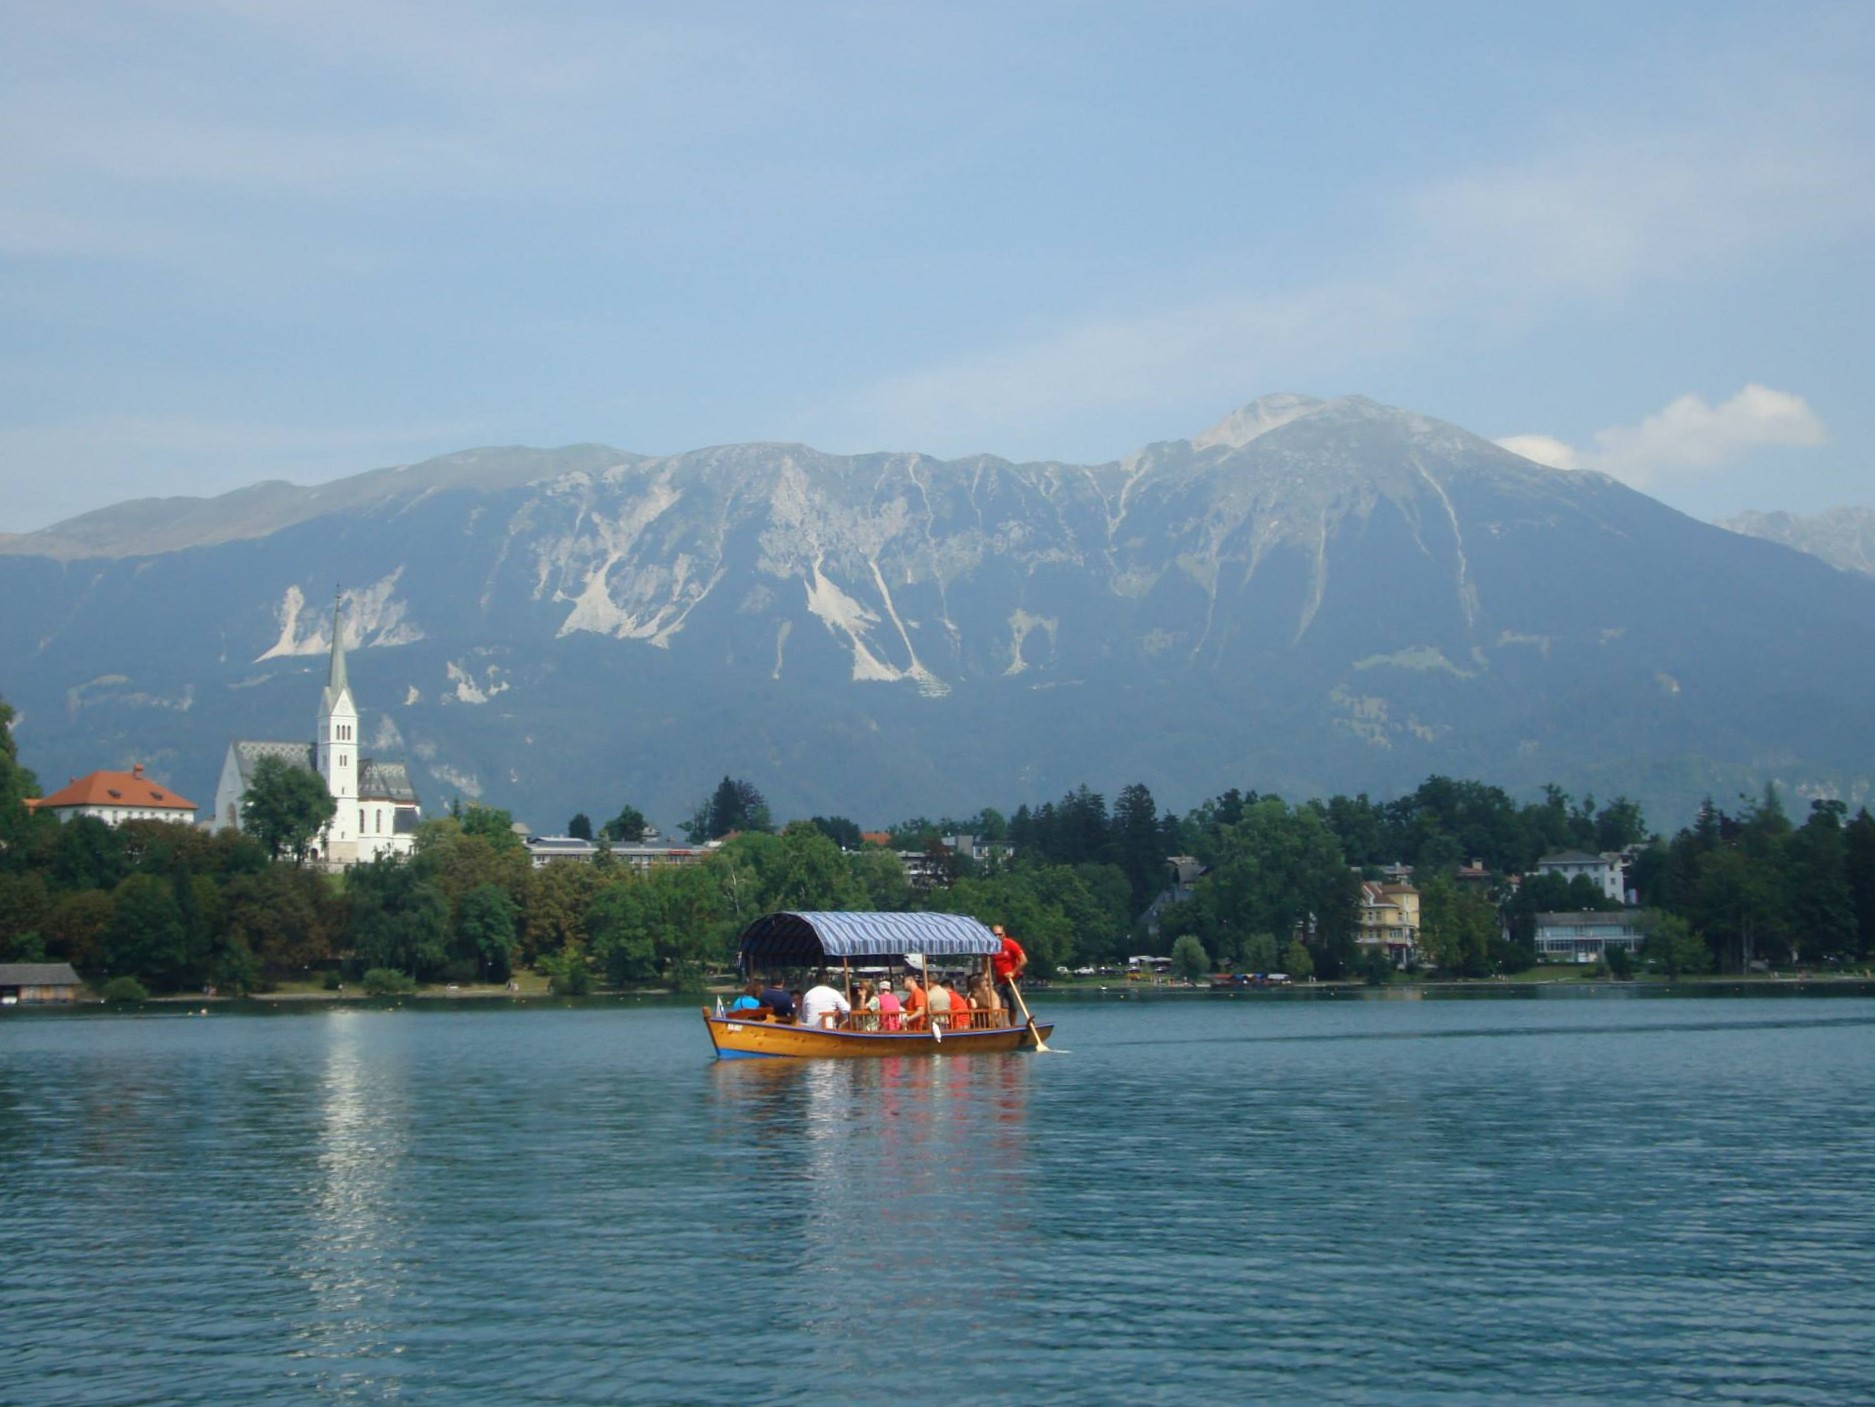 Bled and the Alps